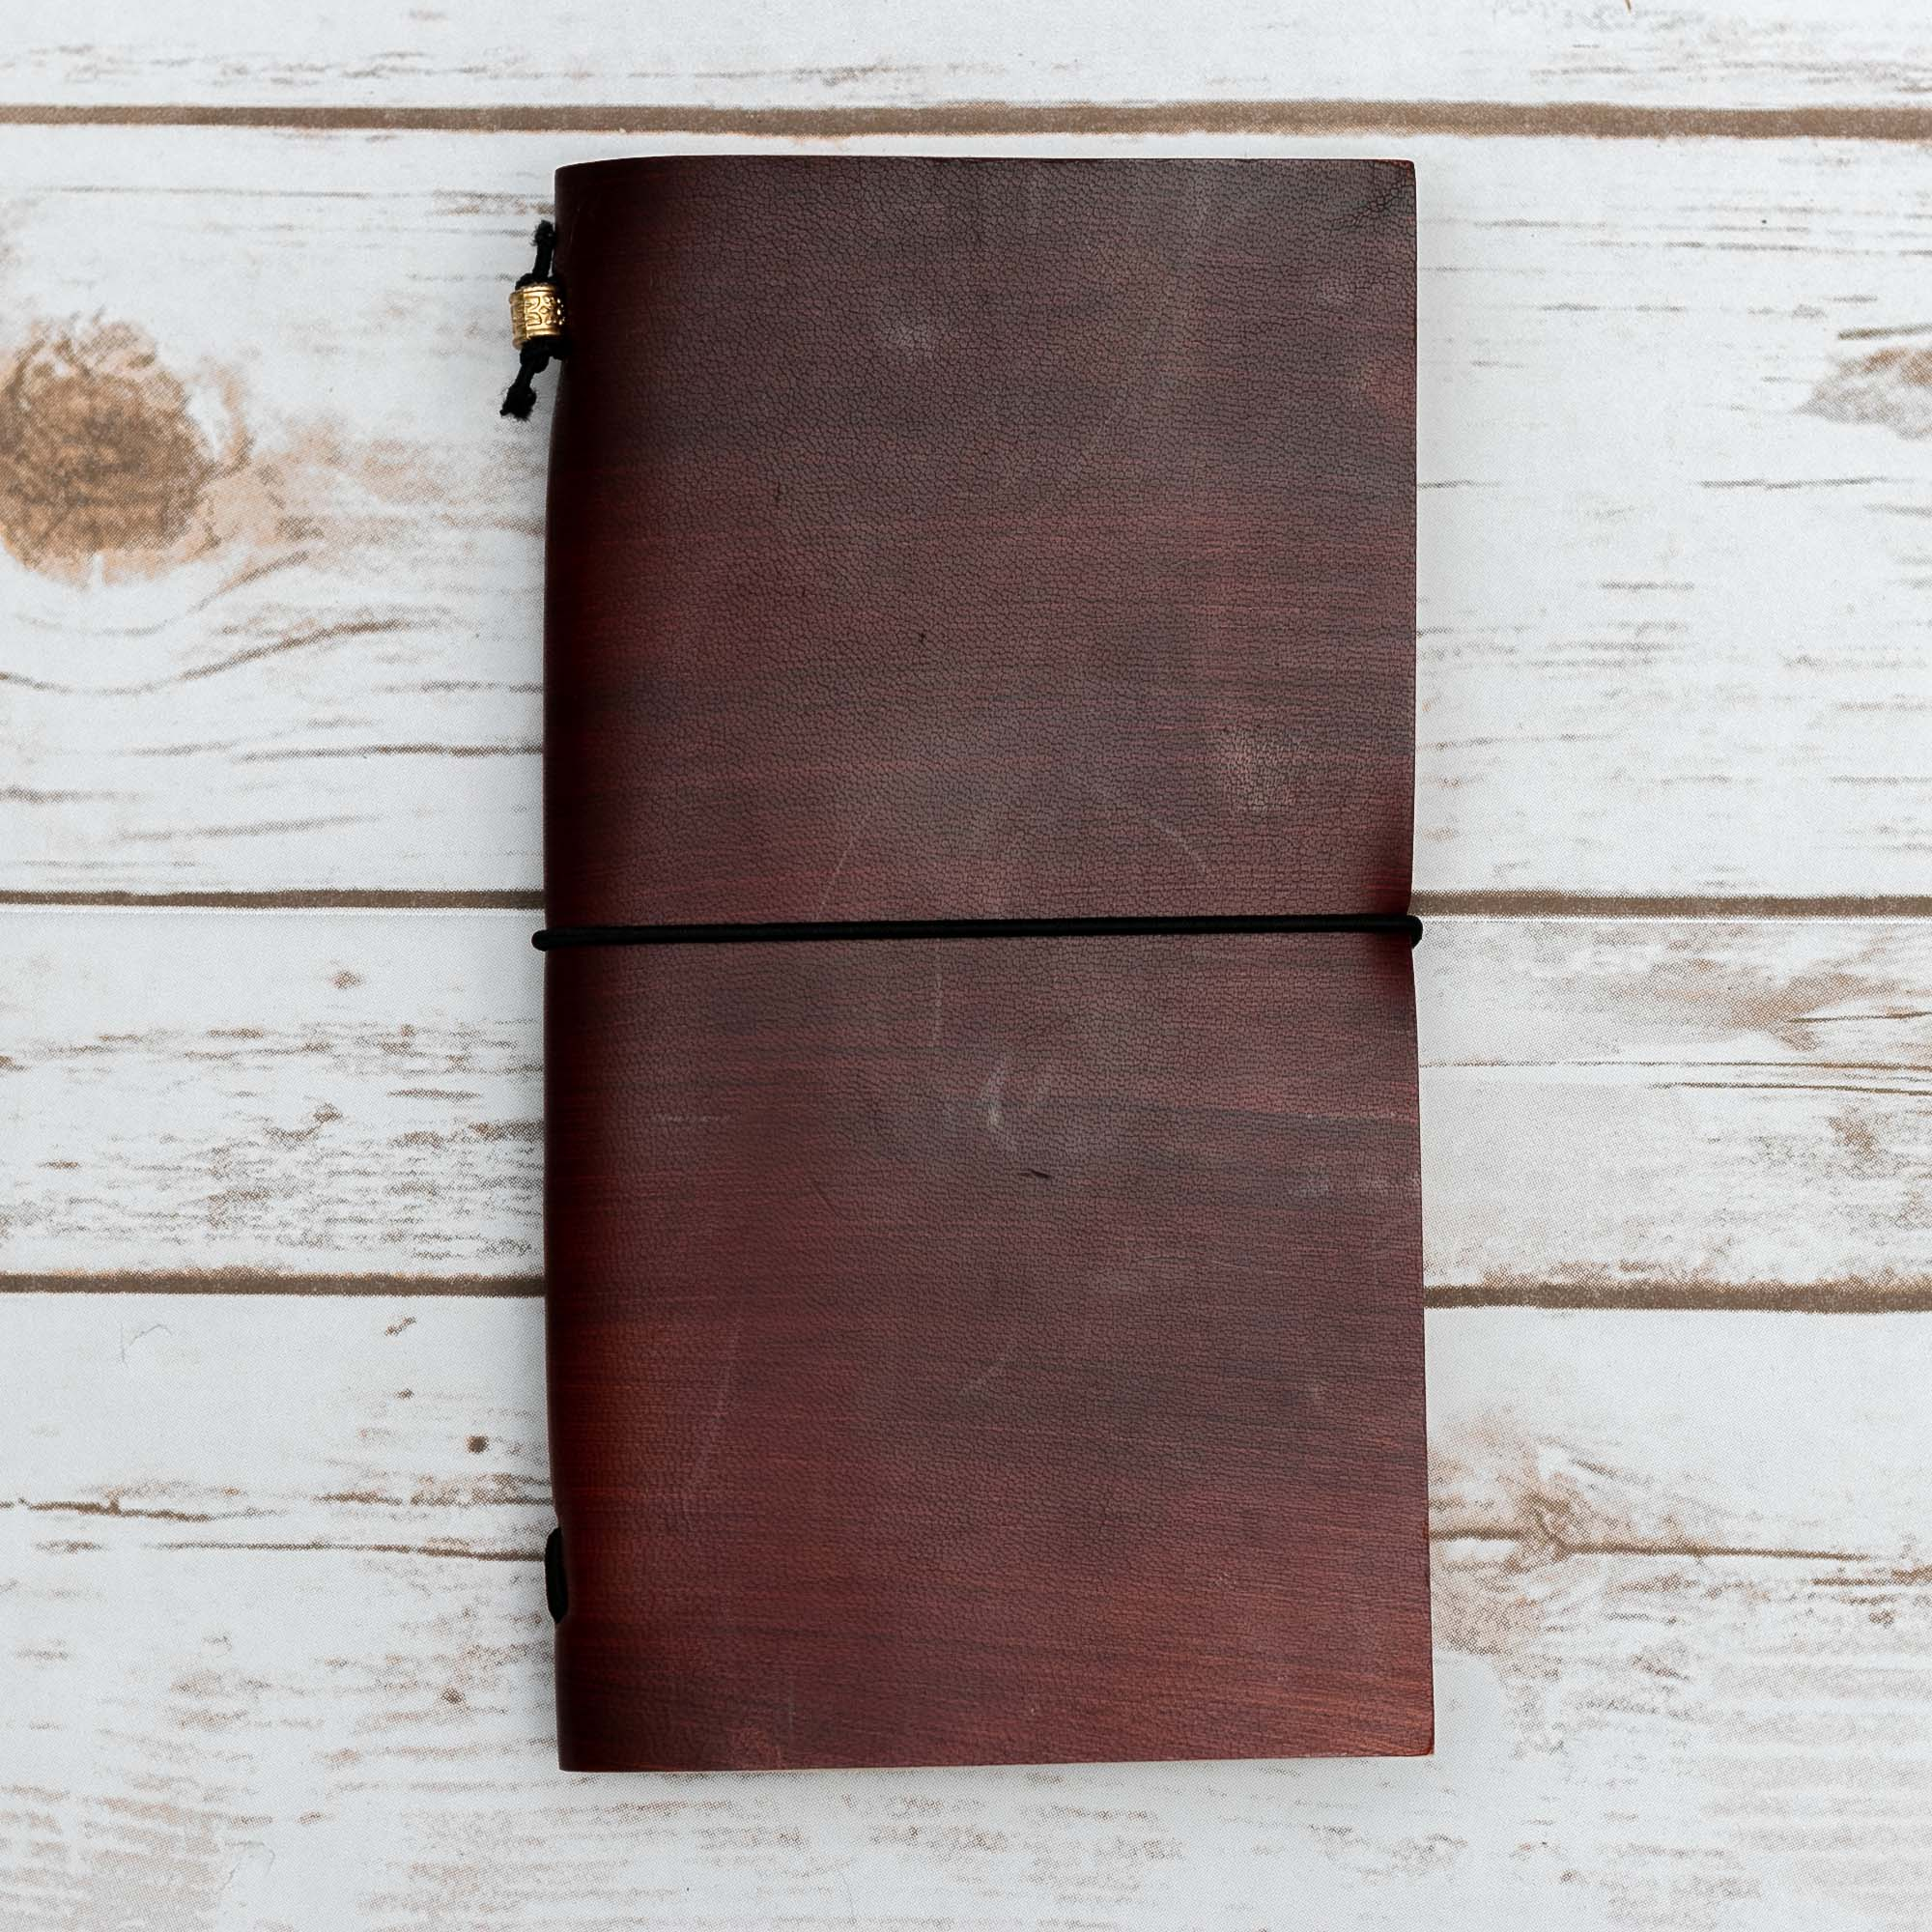 CUSTOM TRAVELER'S LEATHER JOURNALS - TRAVELER'S JOURNALS